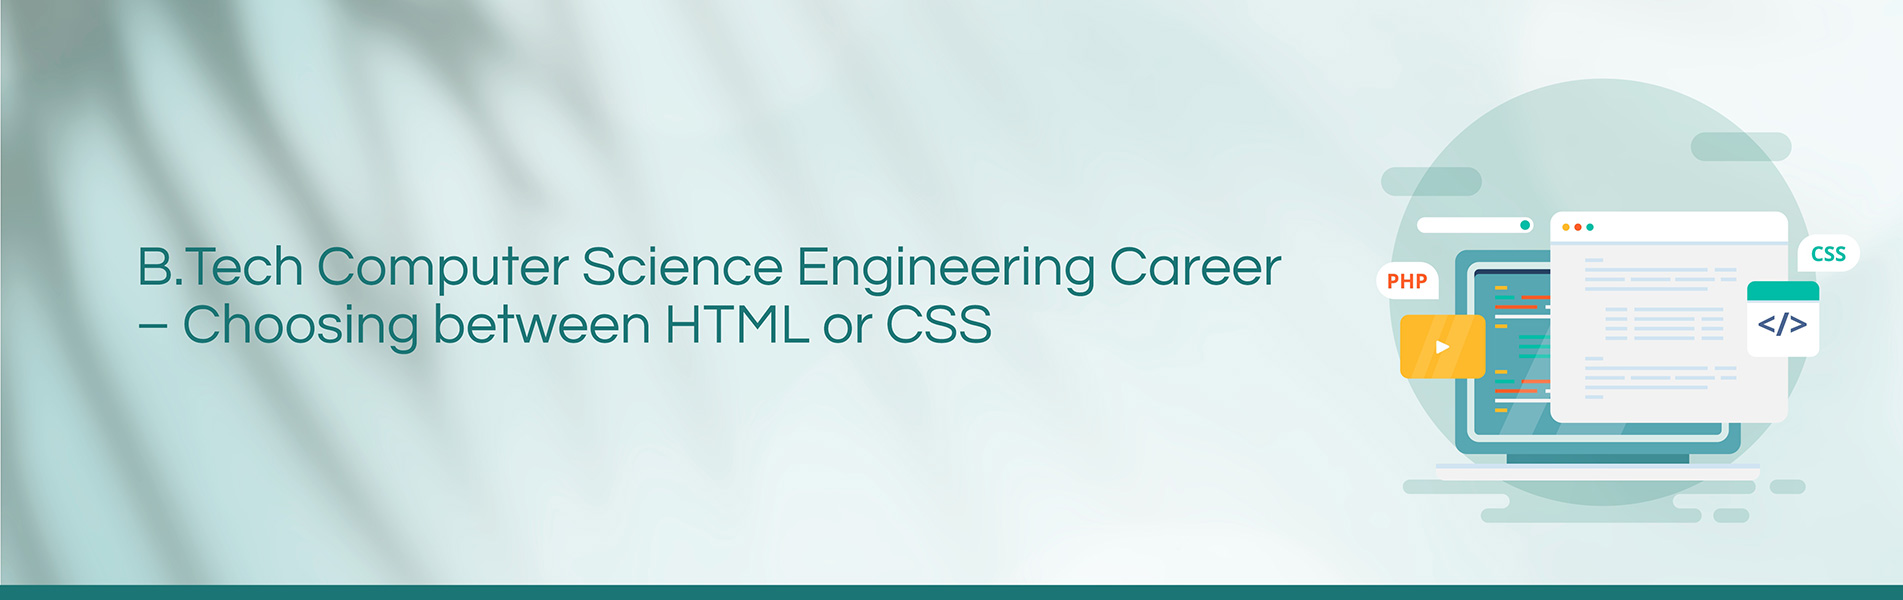 BTech, Computer Science Engineering, Career, HTML, CSS